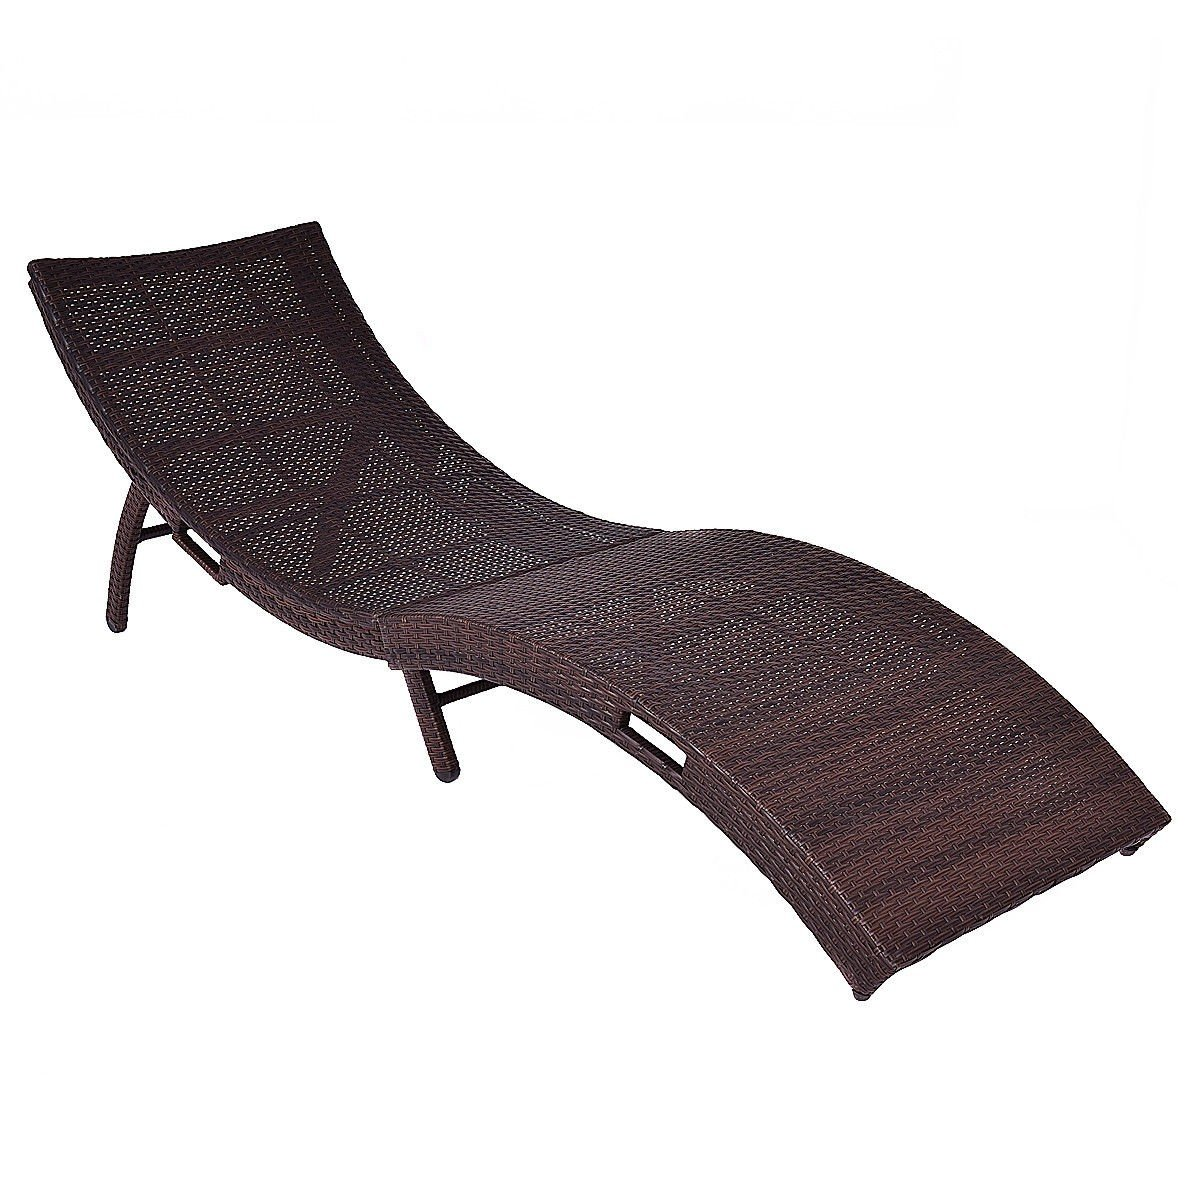 Amazon MyEasyShopping Mix Brown Folding Patio Rattan Chaise Lounge Antique Fainting Couch Sofa Style Vintage French Garden Outdoor